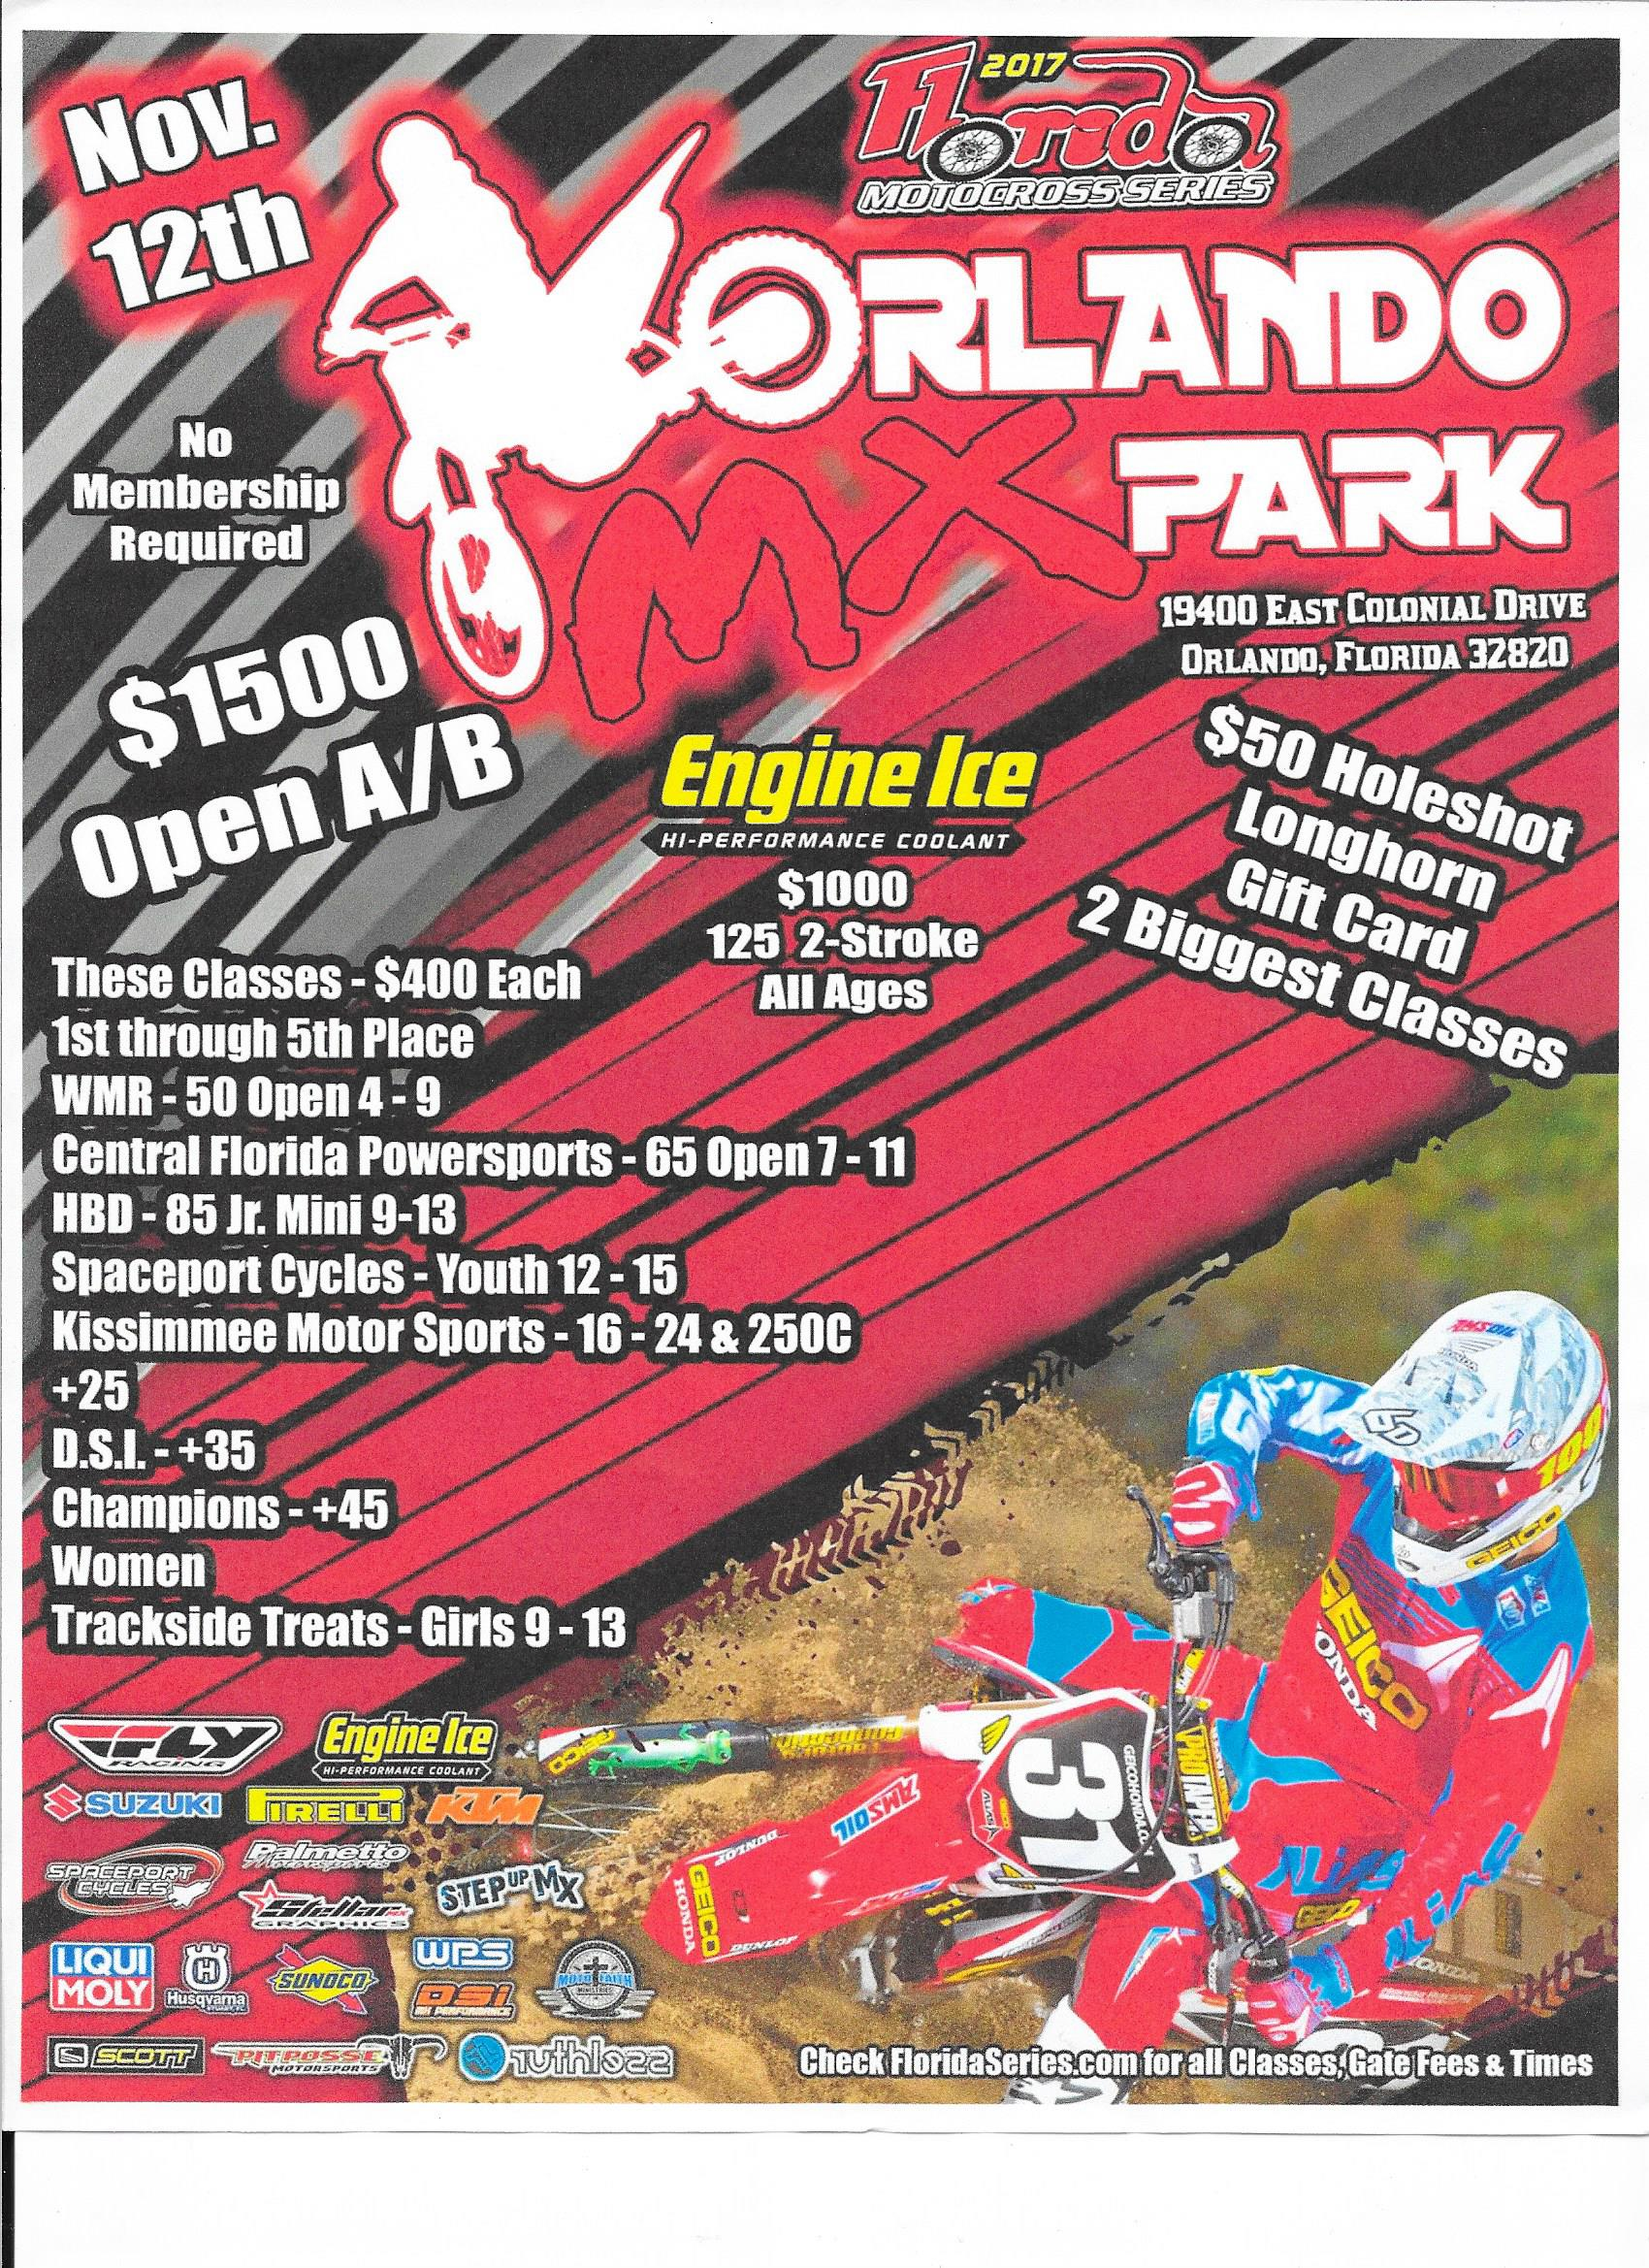 $200 IN FLY BUCKS WILL BE GIVEN IN 50cc OIL, SUPERMINI 10 15, VET NOVICE  AND +50 CLASSES. ORLANDO ROOFING AND CONTRACTING HAS ALSO PUT $200 TOWARDS  HOLESHOT ...